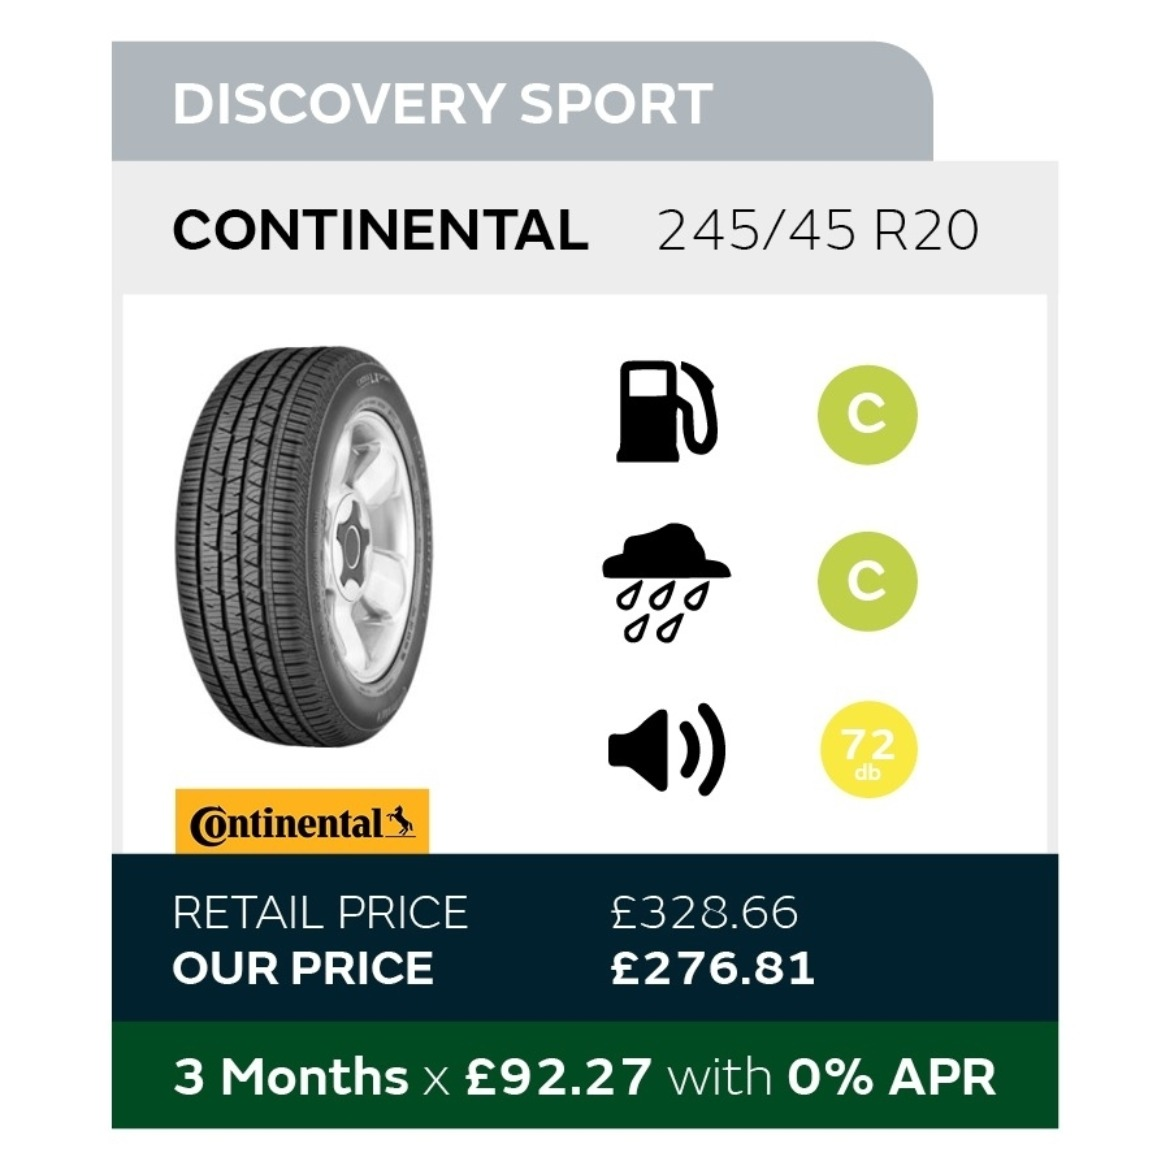 Discovery Sport Tyre Offer